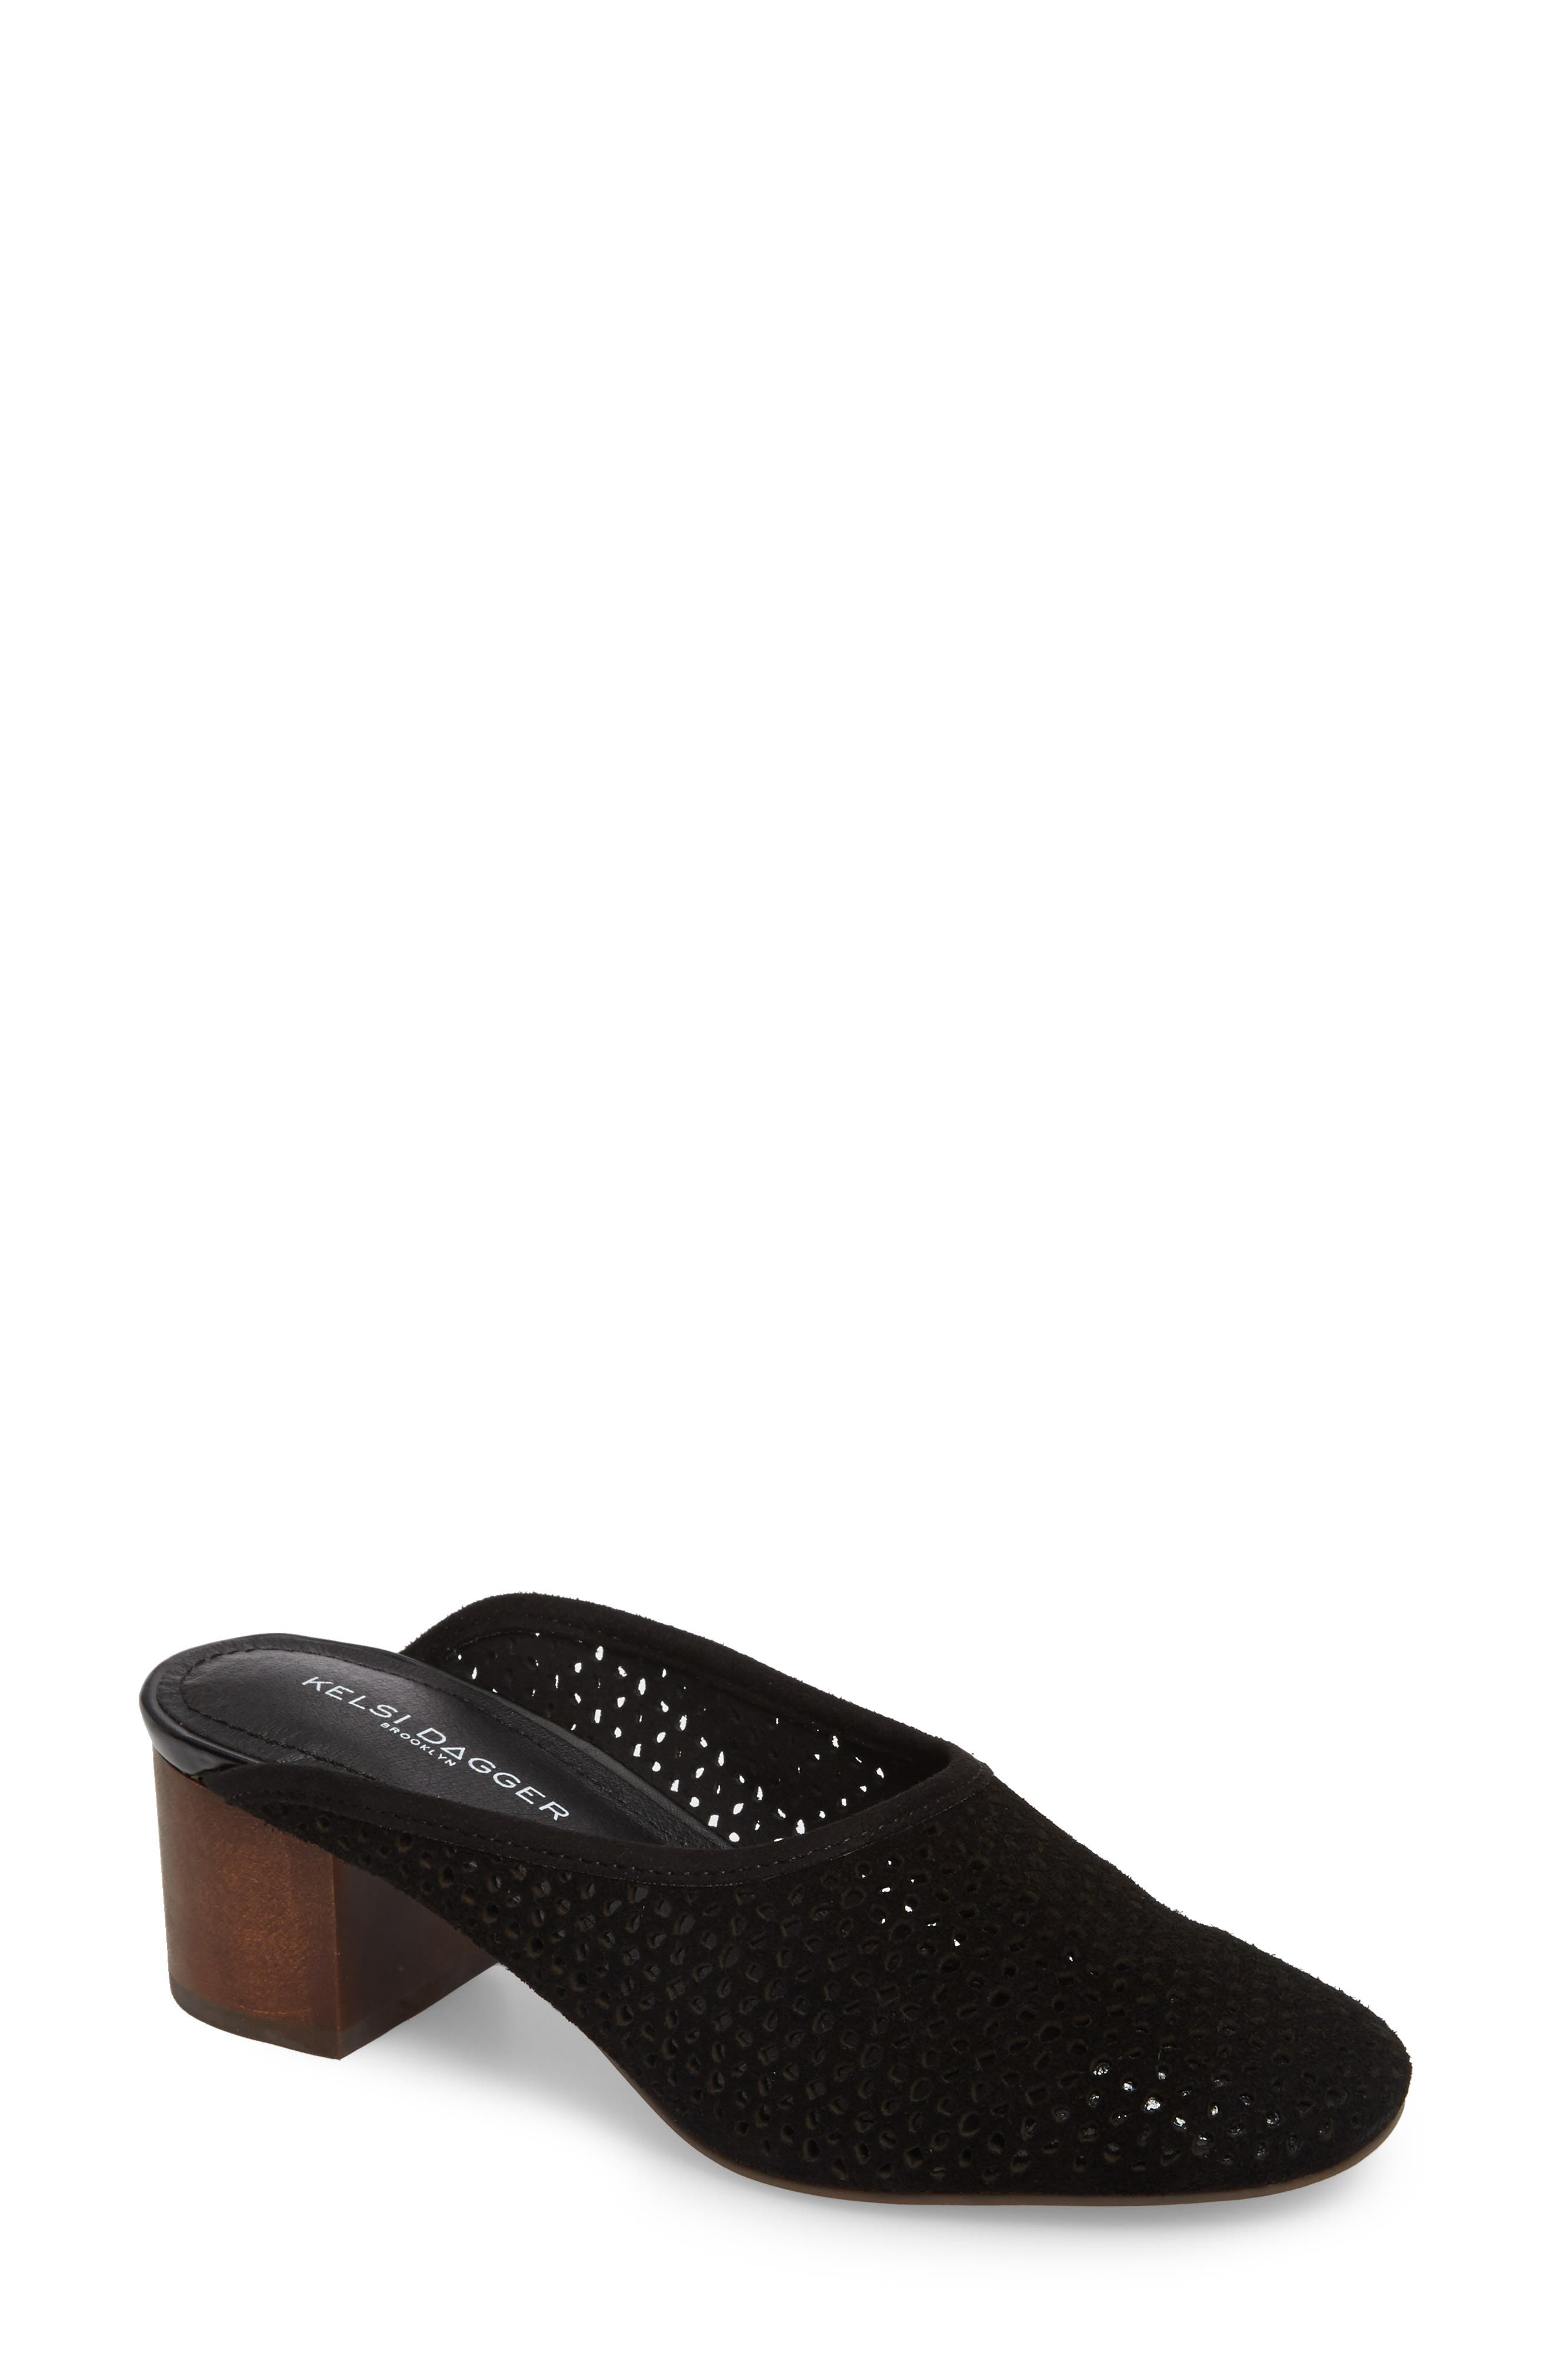 Lincoln Perforated Mule,                             Main thumbnail 1, color,                             001